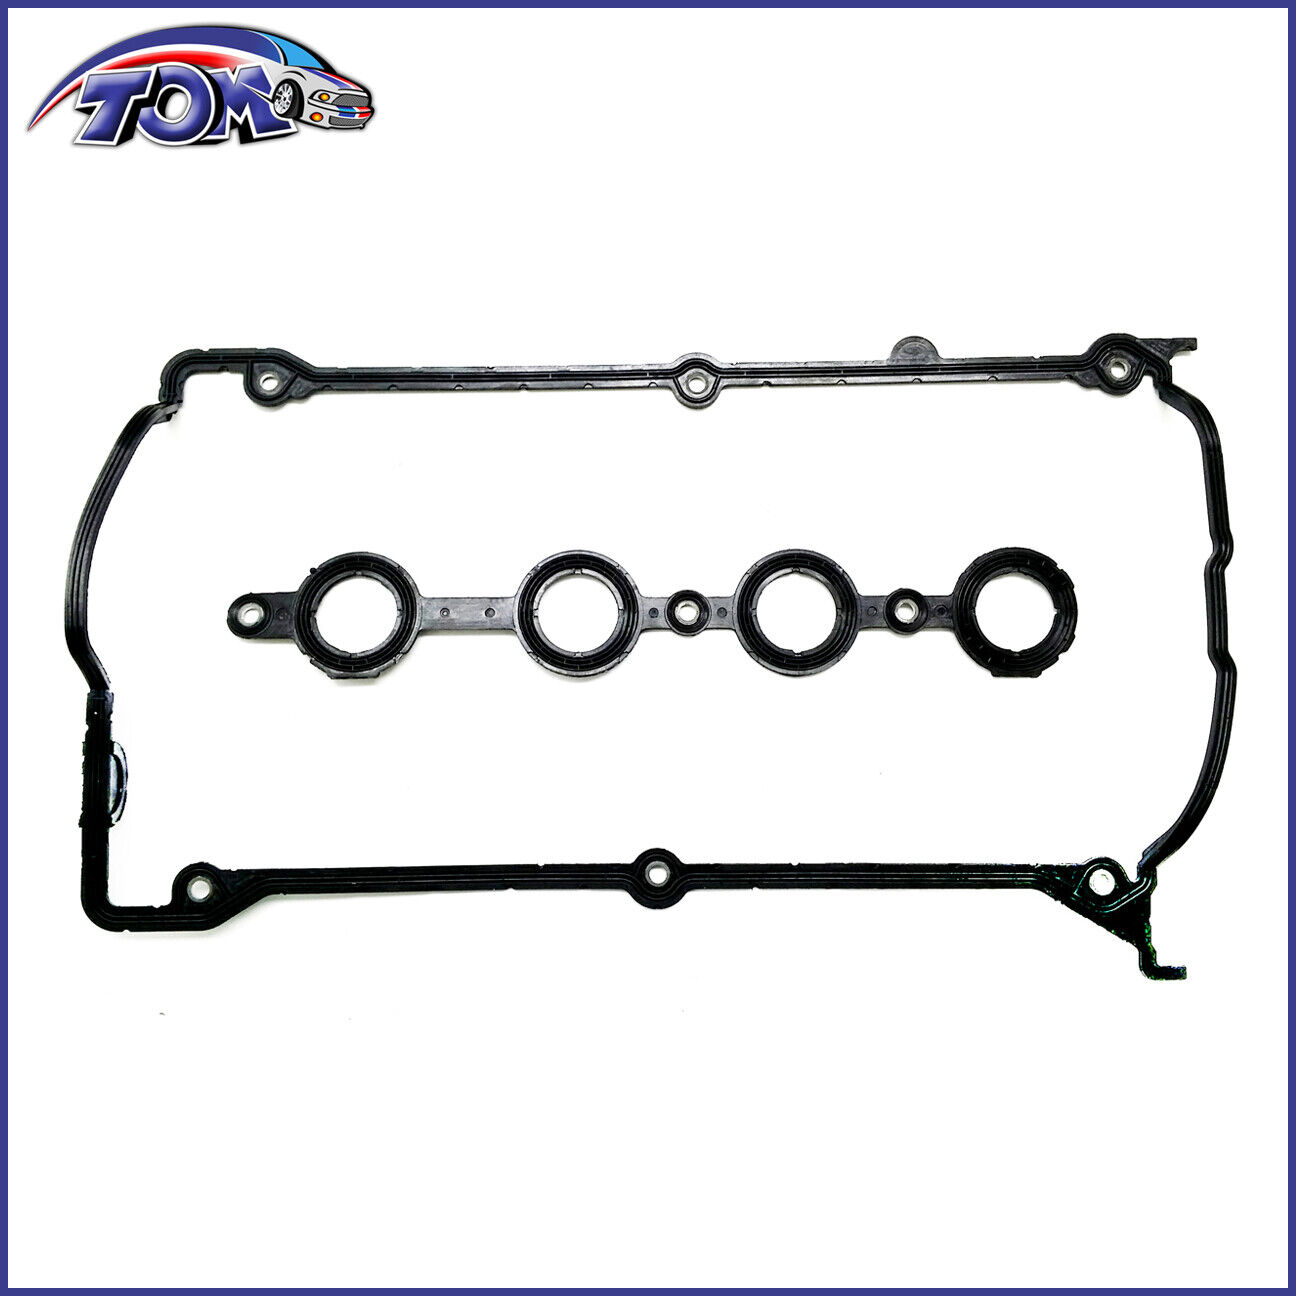 New Engine Head Gasket Bolts Intake Amp Exhaust Valves Kit